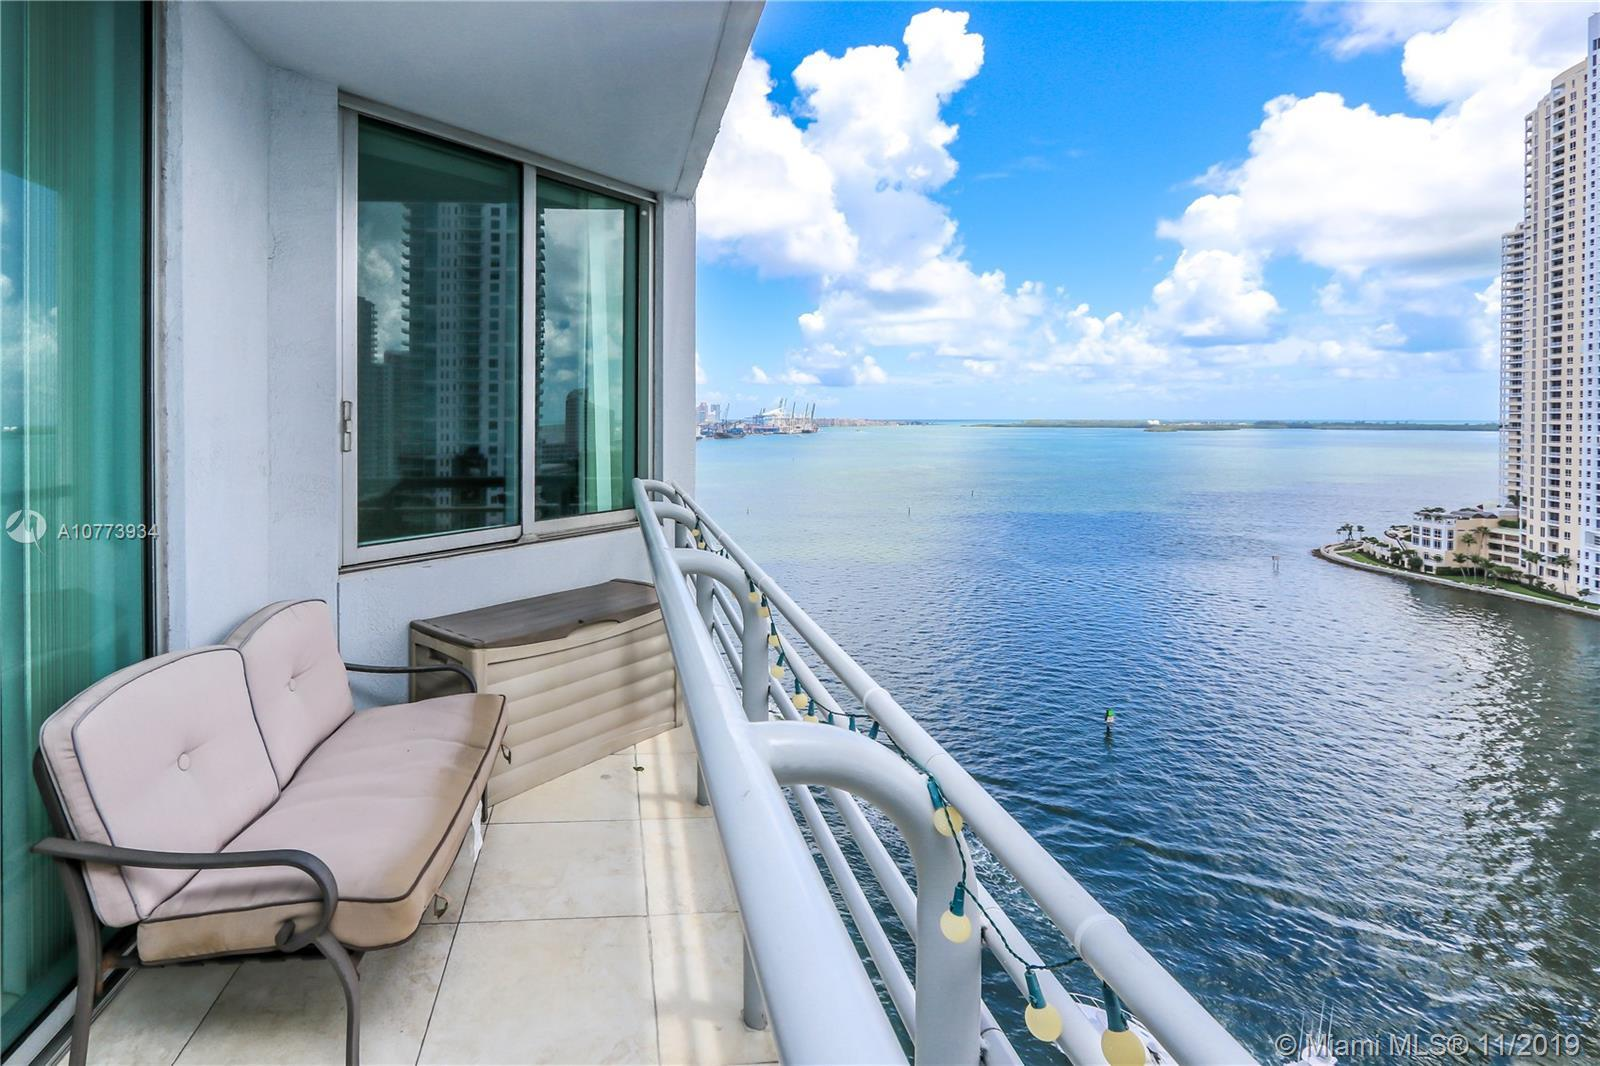 Beautifully furnished 2 bedrooms 2 baths condo with direct views of Biscayne Bay, Miami River, and B